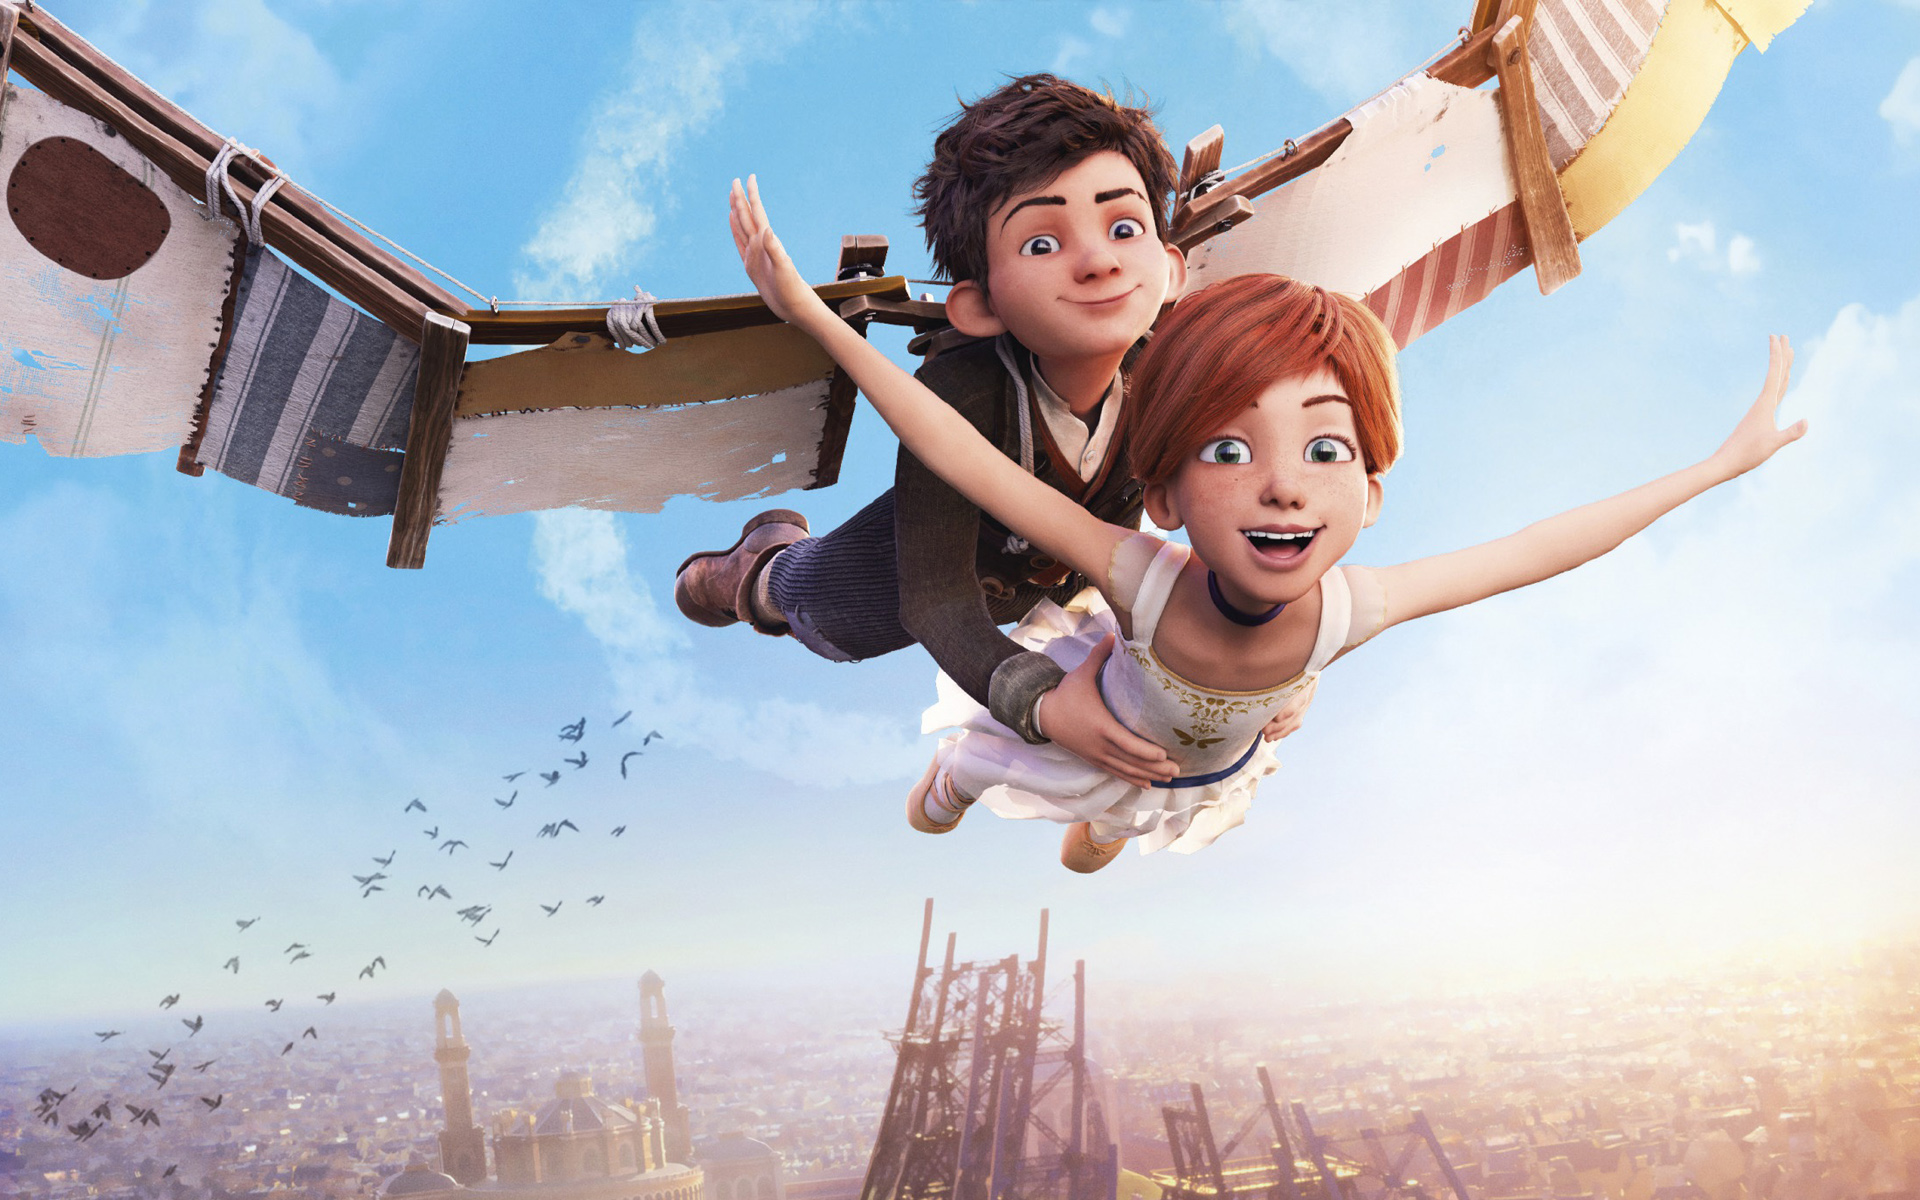 Good Wallpaper Movie Animated - 2016-animated-movie-ballerina-wide  Pictures_15814.jpg